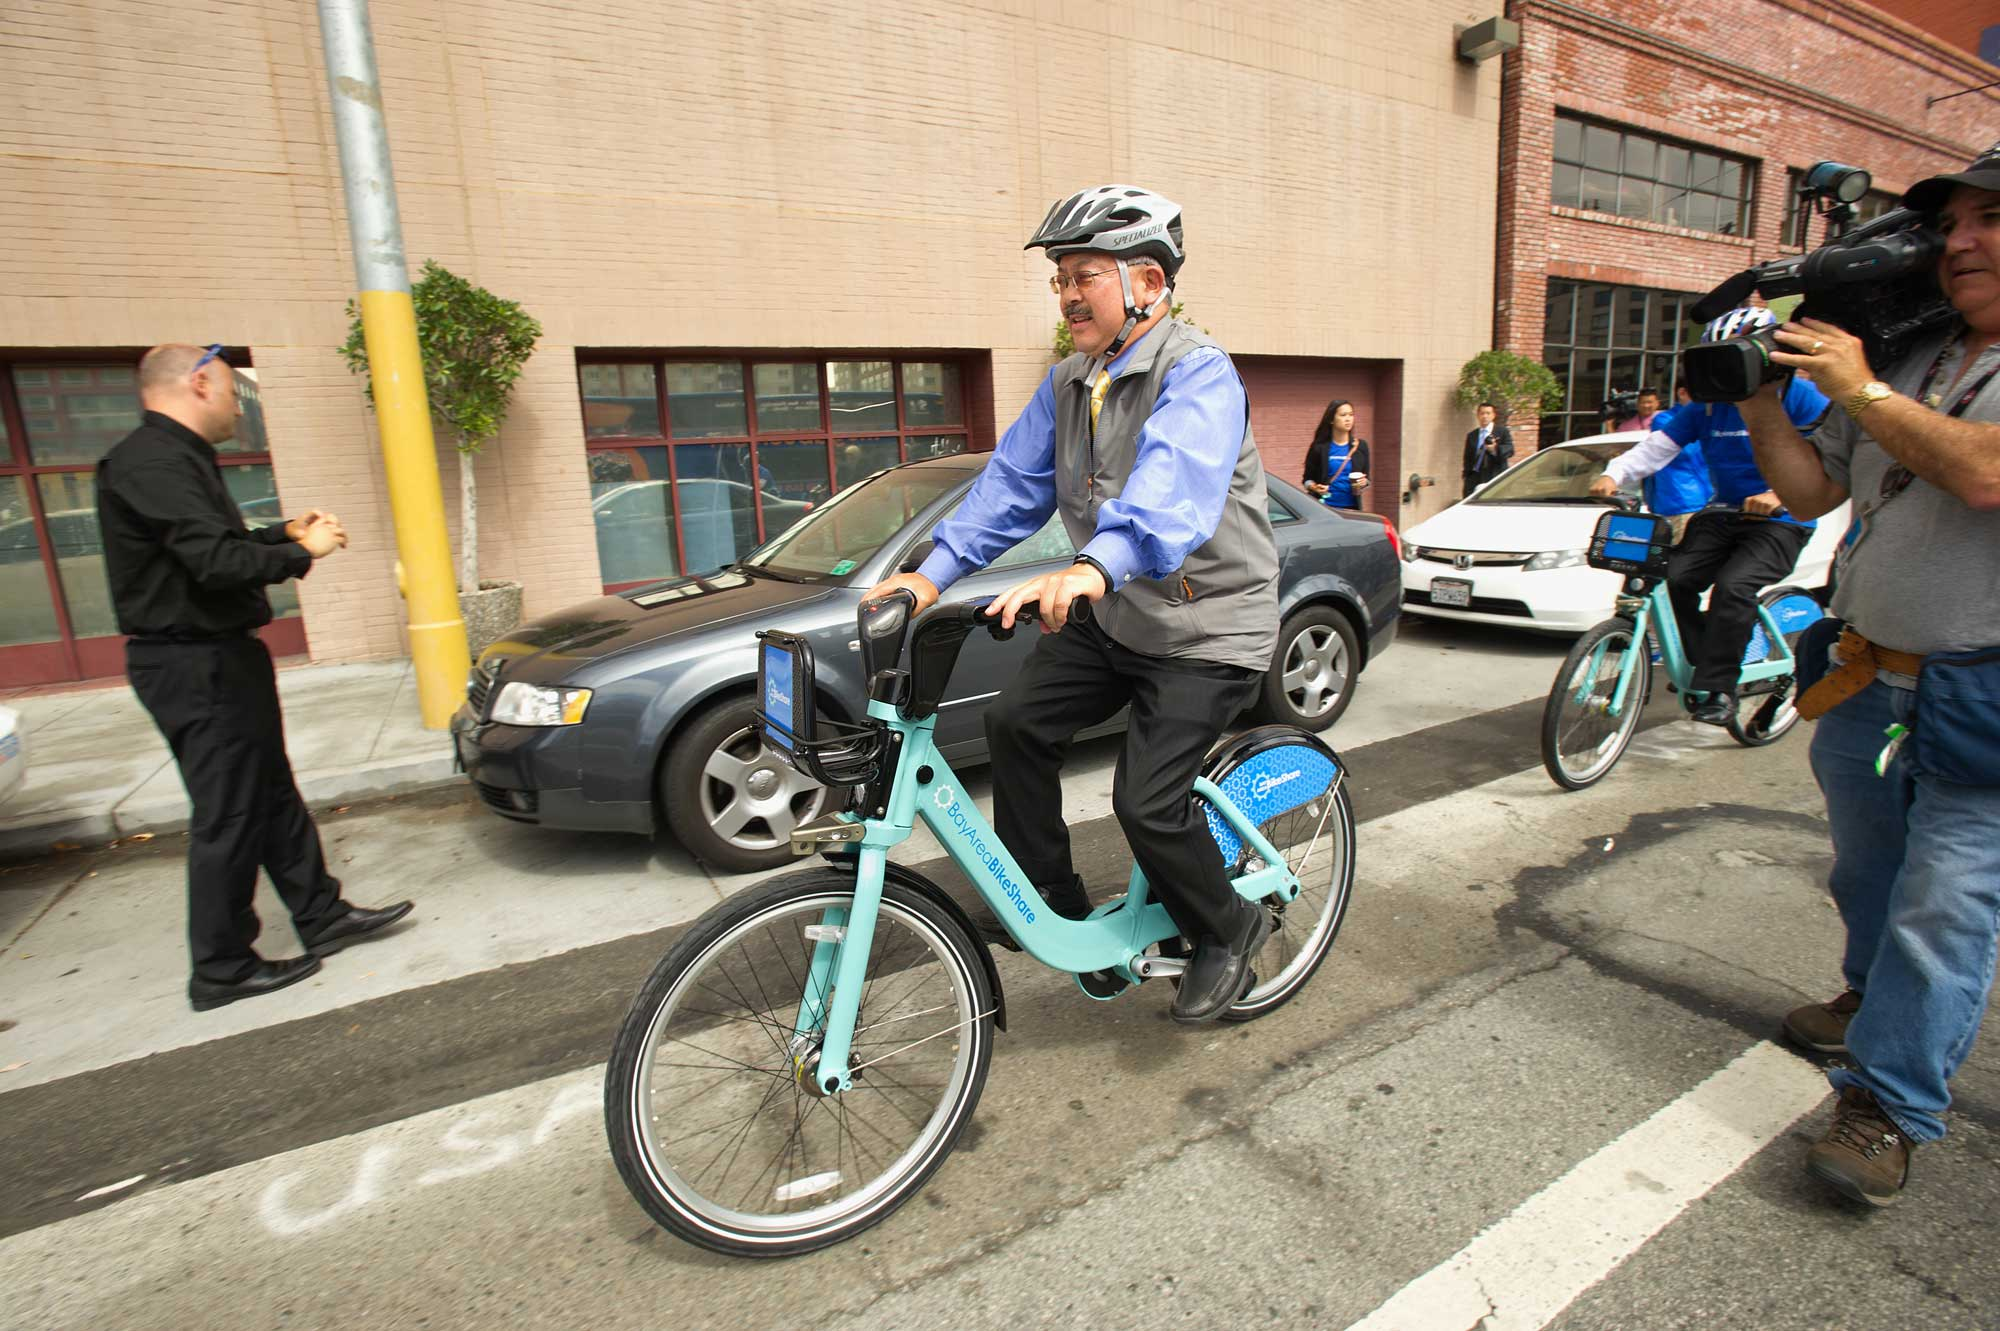 SF Mayor Ed Lee gives one of the bikes a whirl.